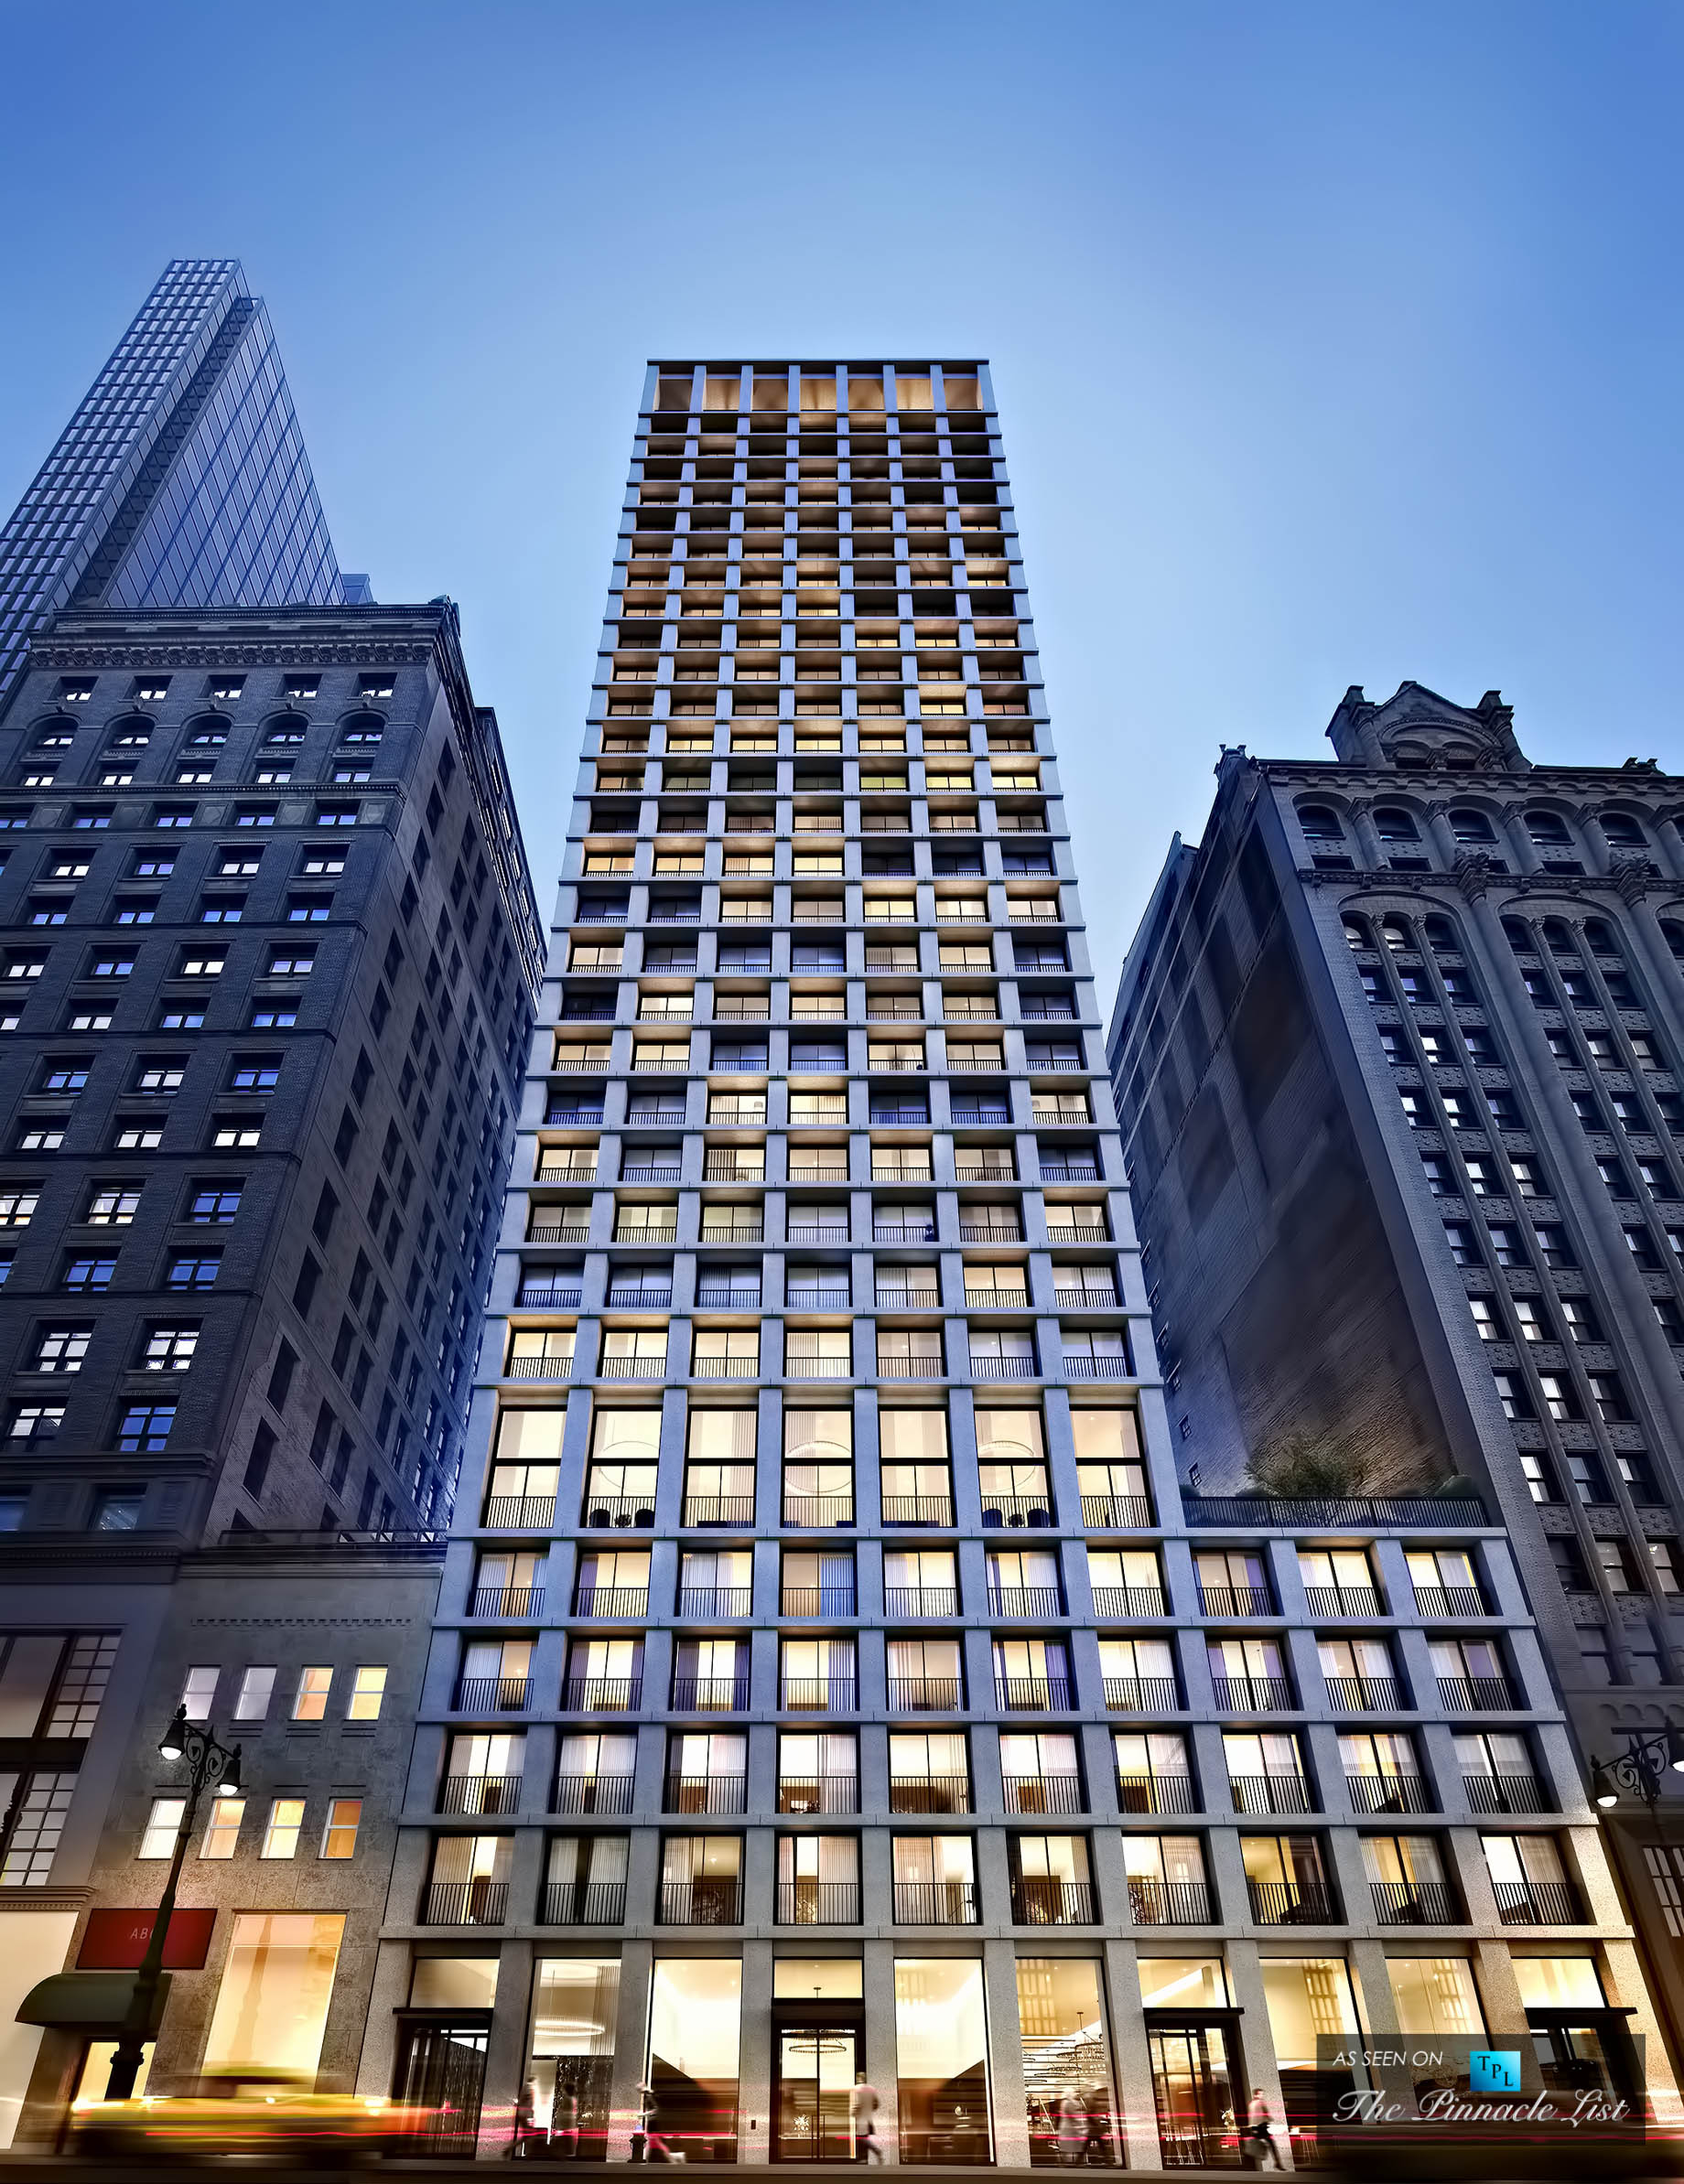 The Bryant New York - David Chipperfield Architects